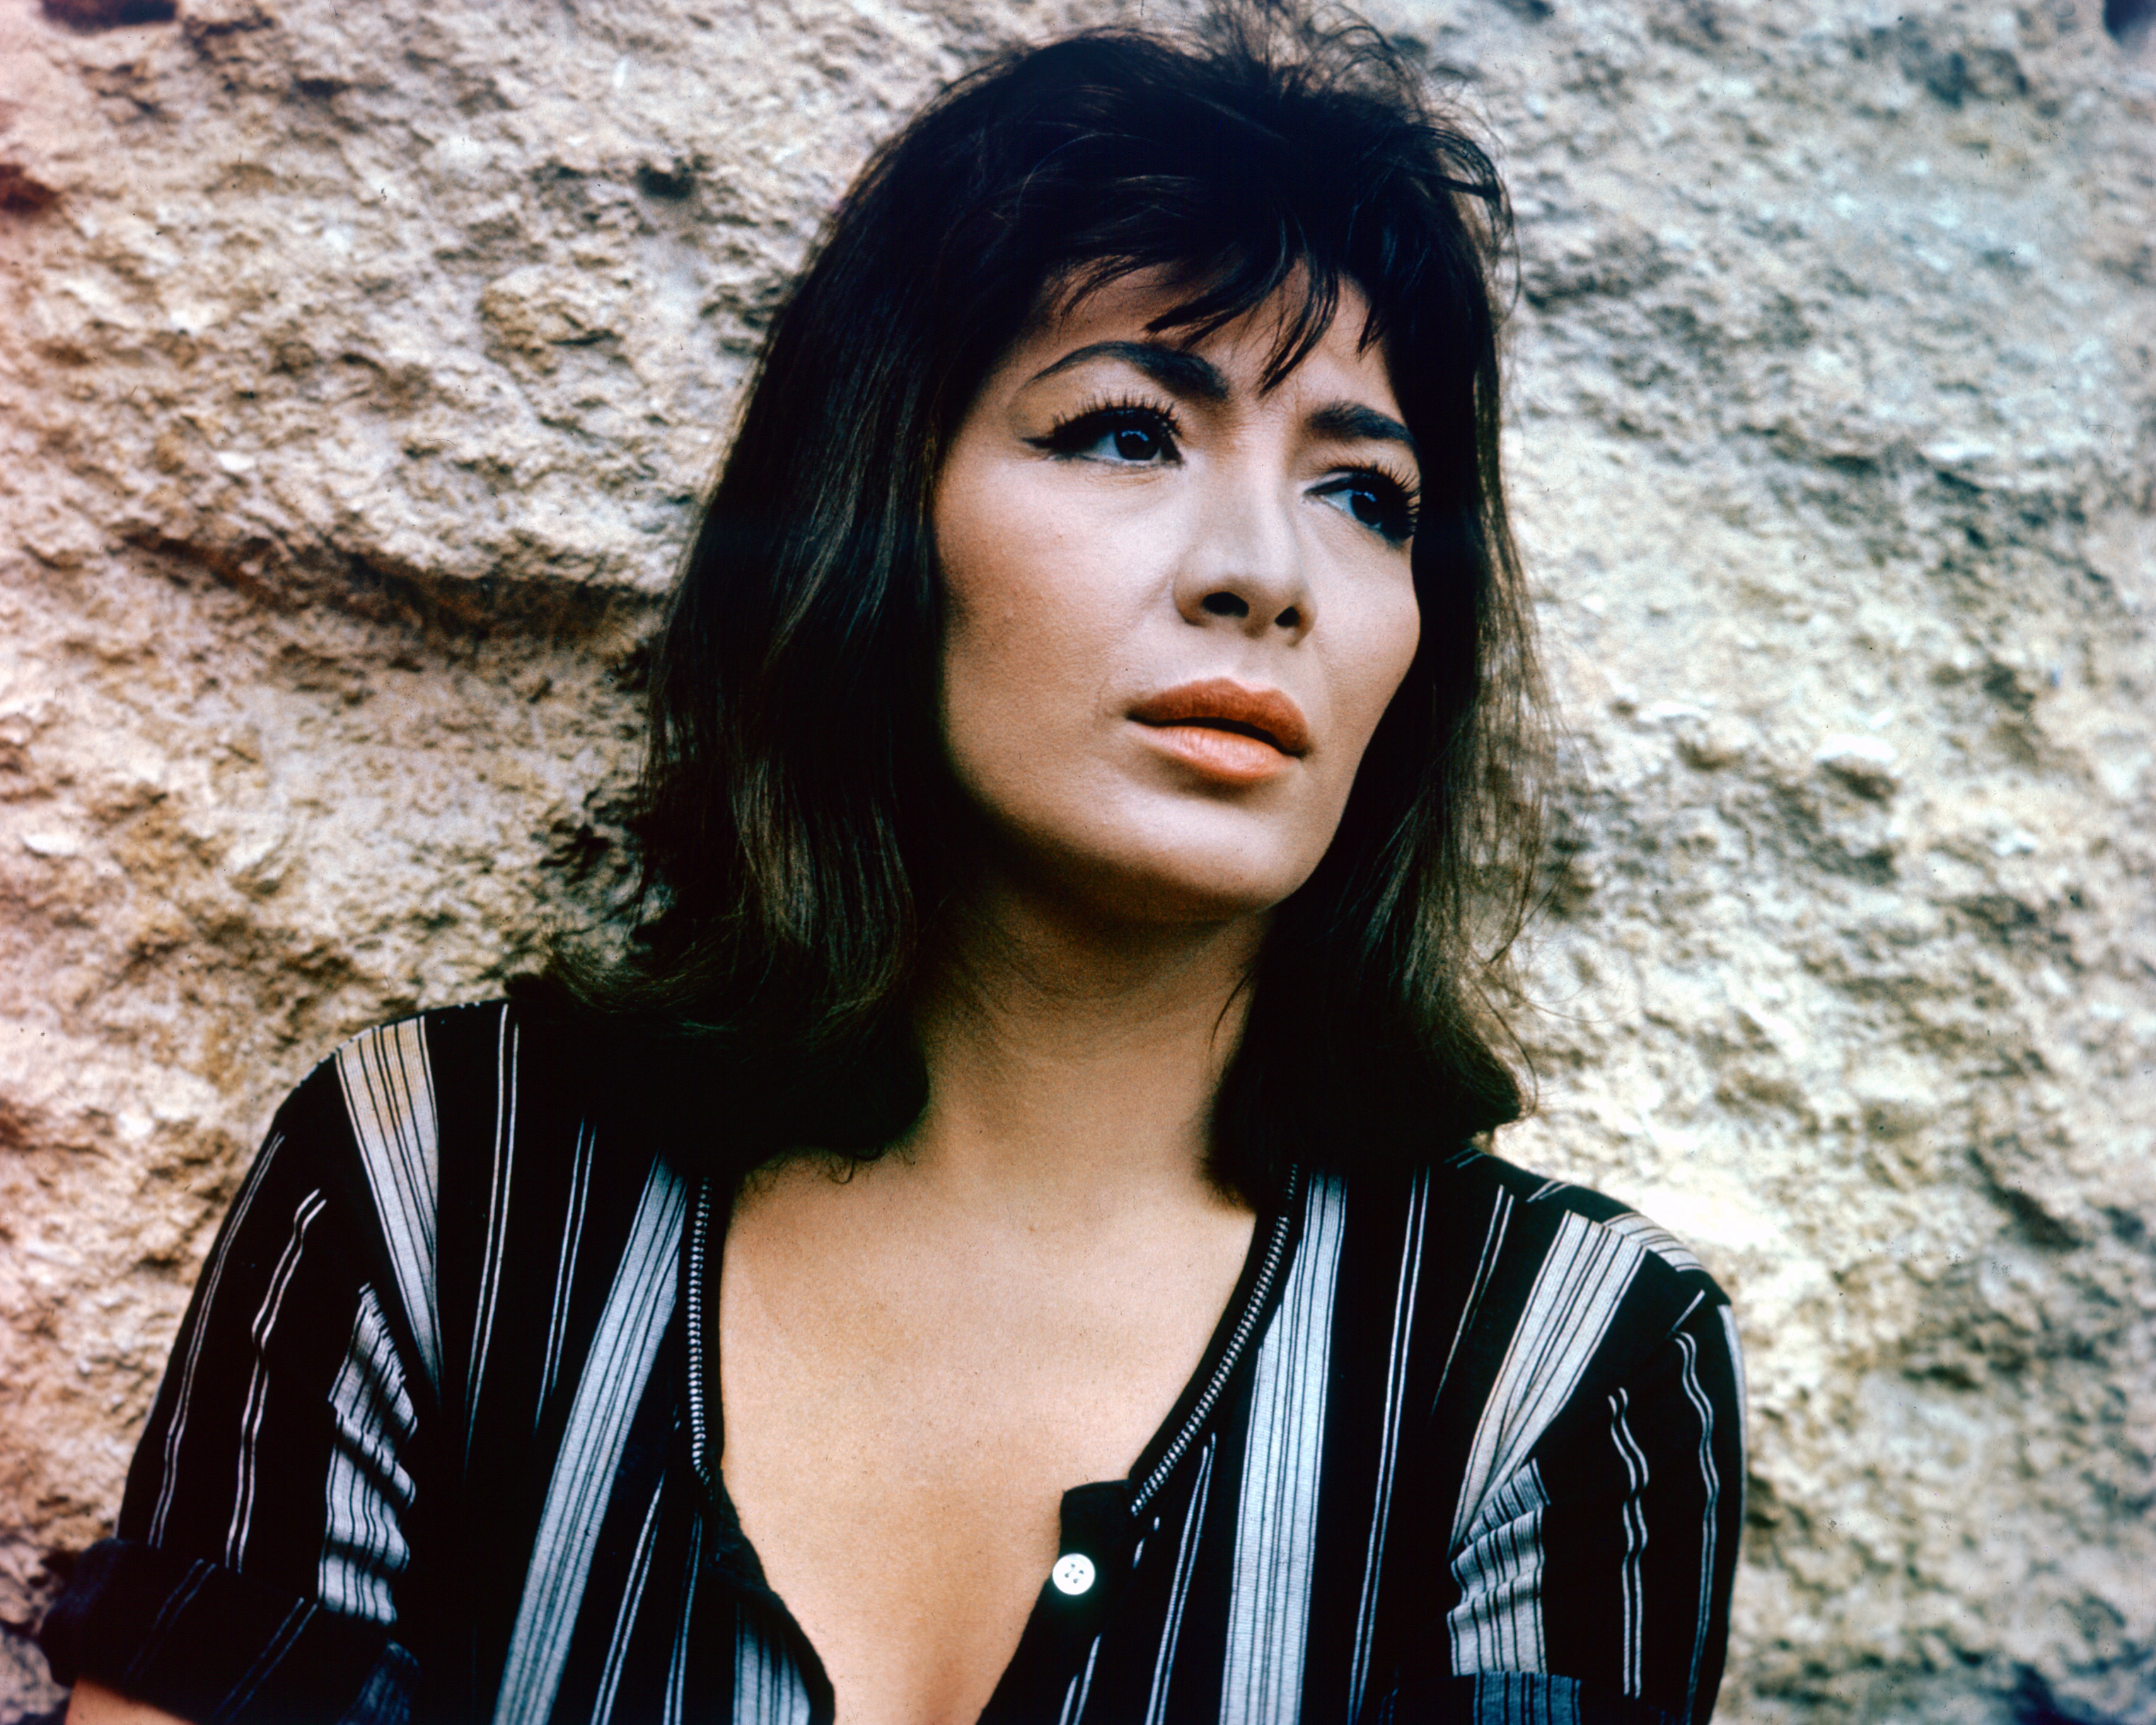 Juliette Greco in 1965